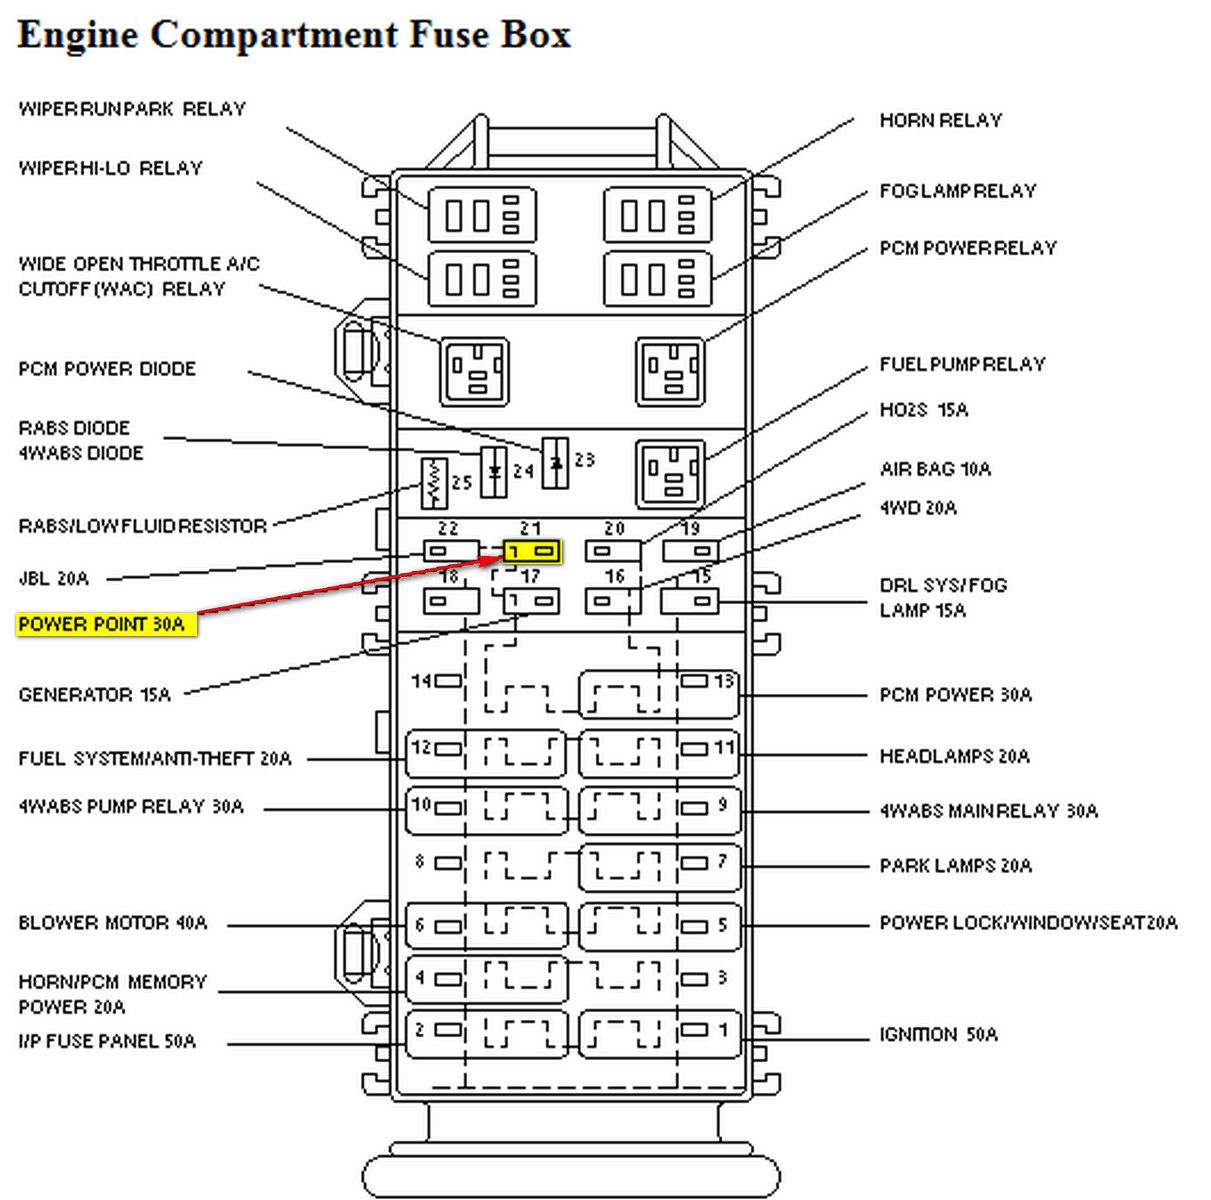 1997 ford ranger fuse box diagram truck part diagrams | ford ...  pinterest